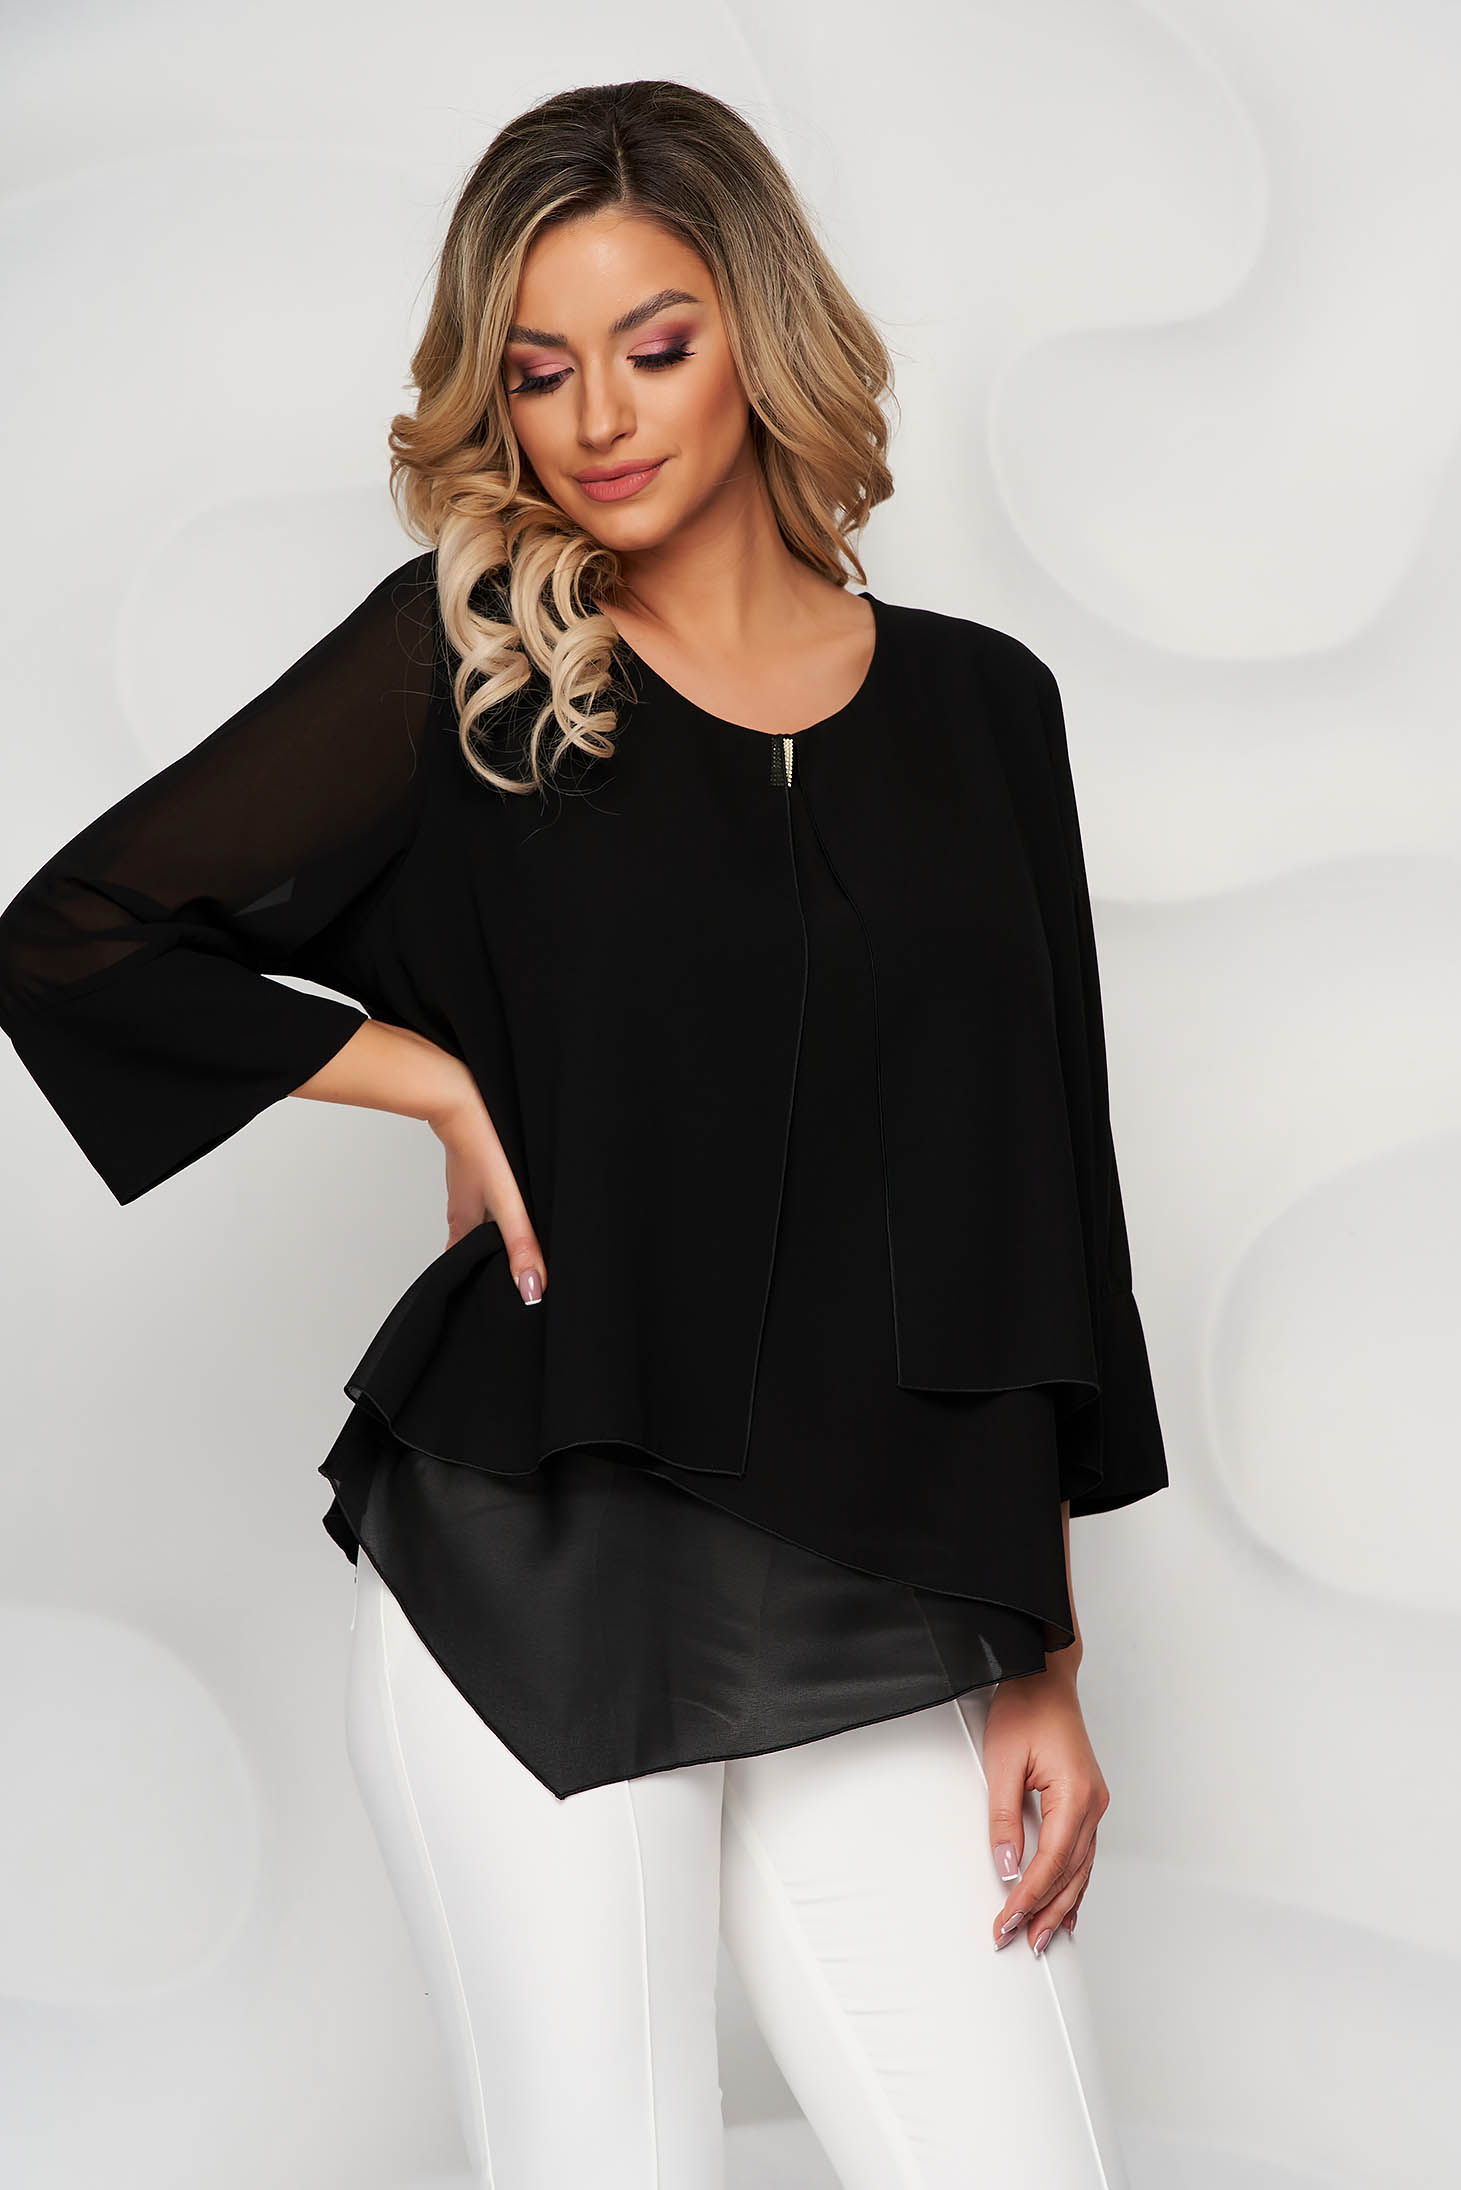 Black office asymmetrical flared women`s blouse short cut from veil fabric with metal accessories